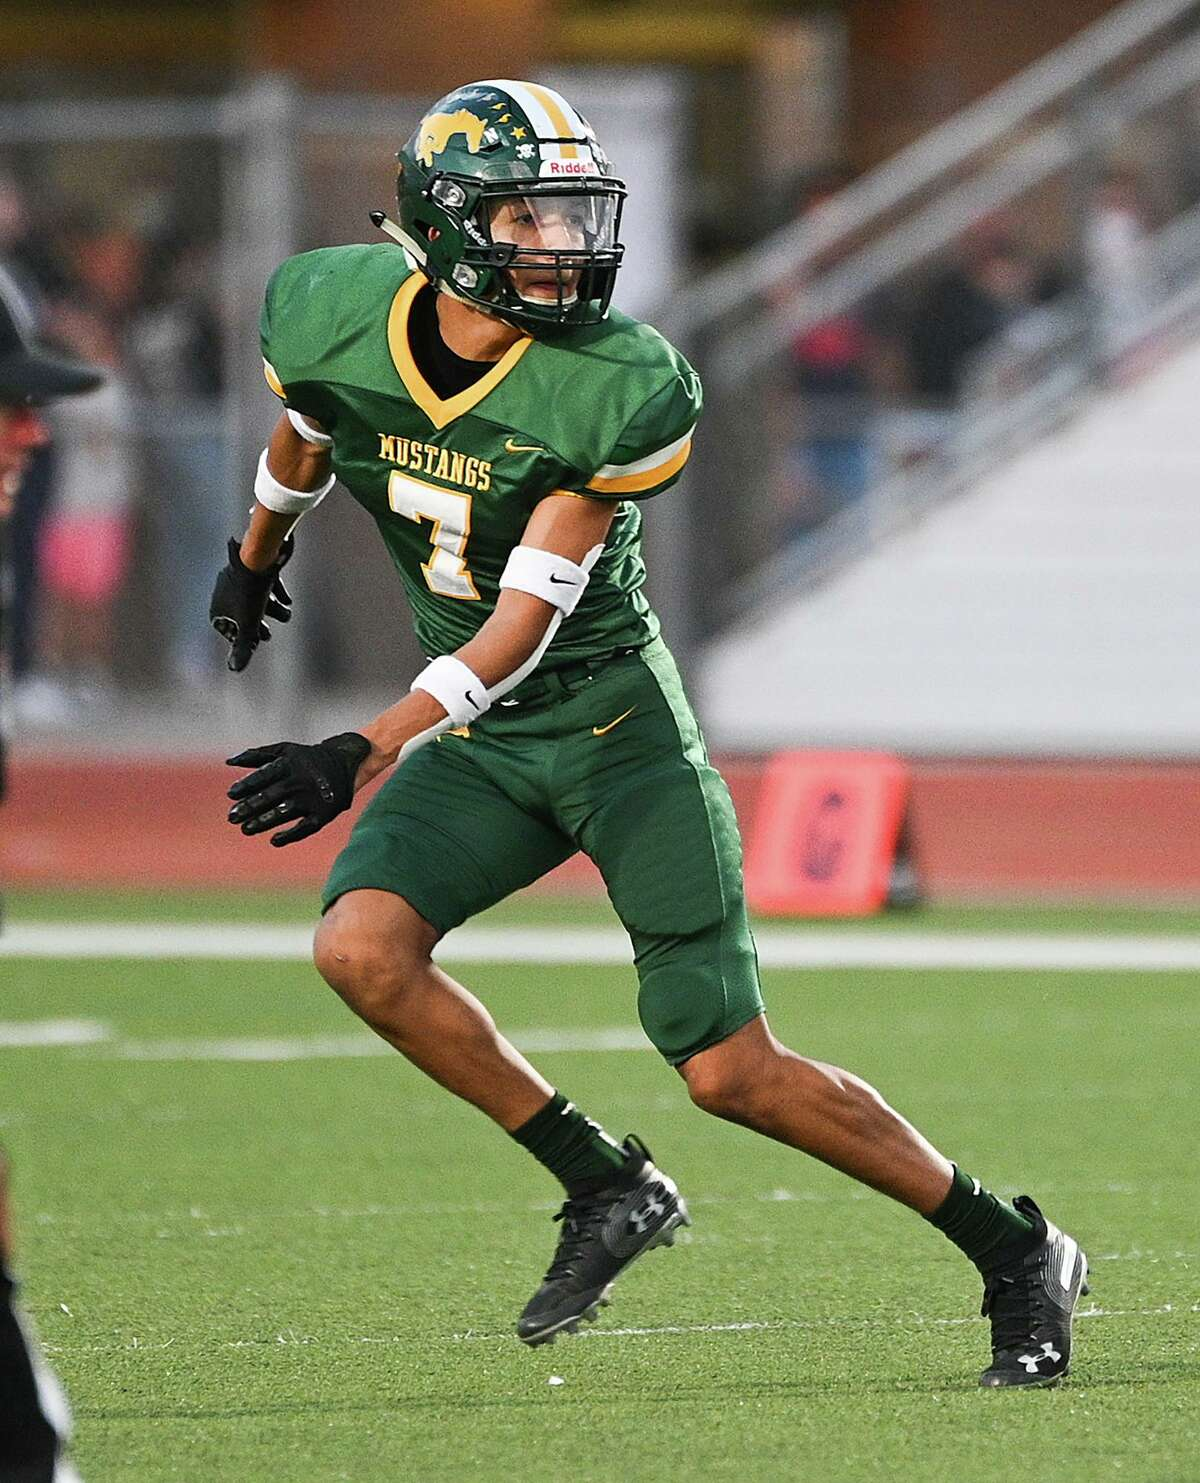 Free safety Alexis Aldana is dependable defensive back for the Mustangs.